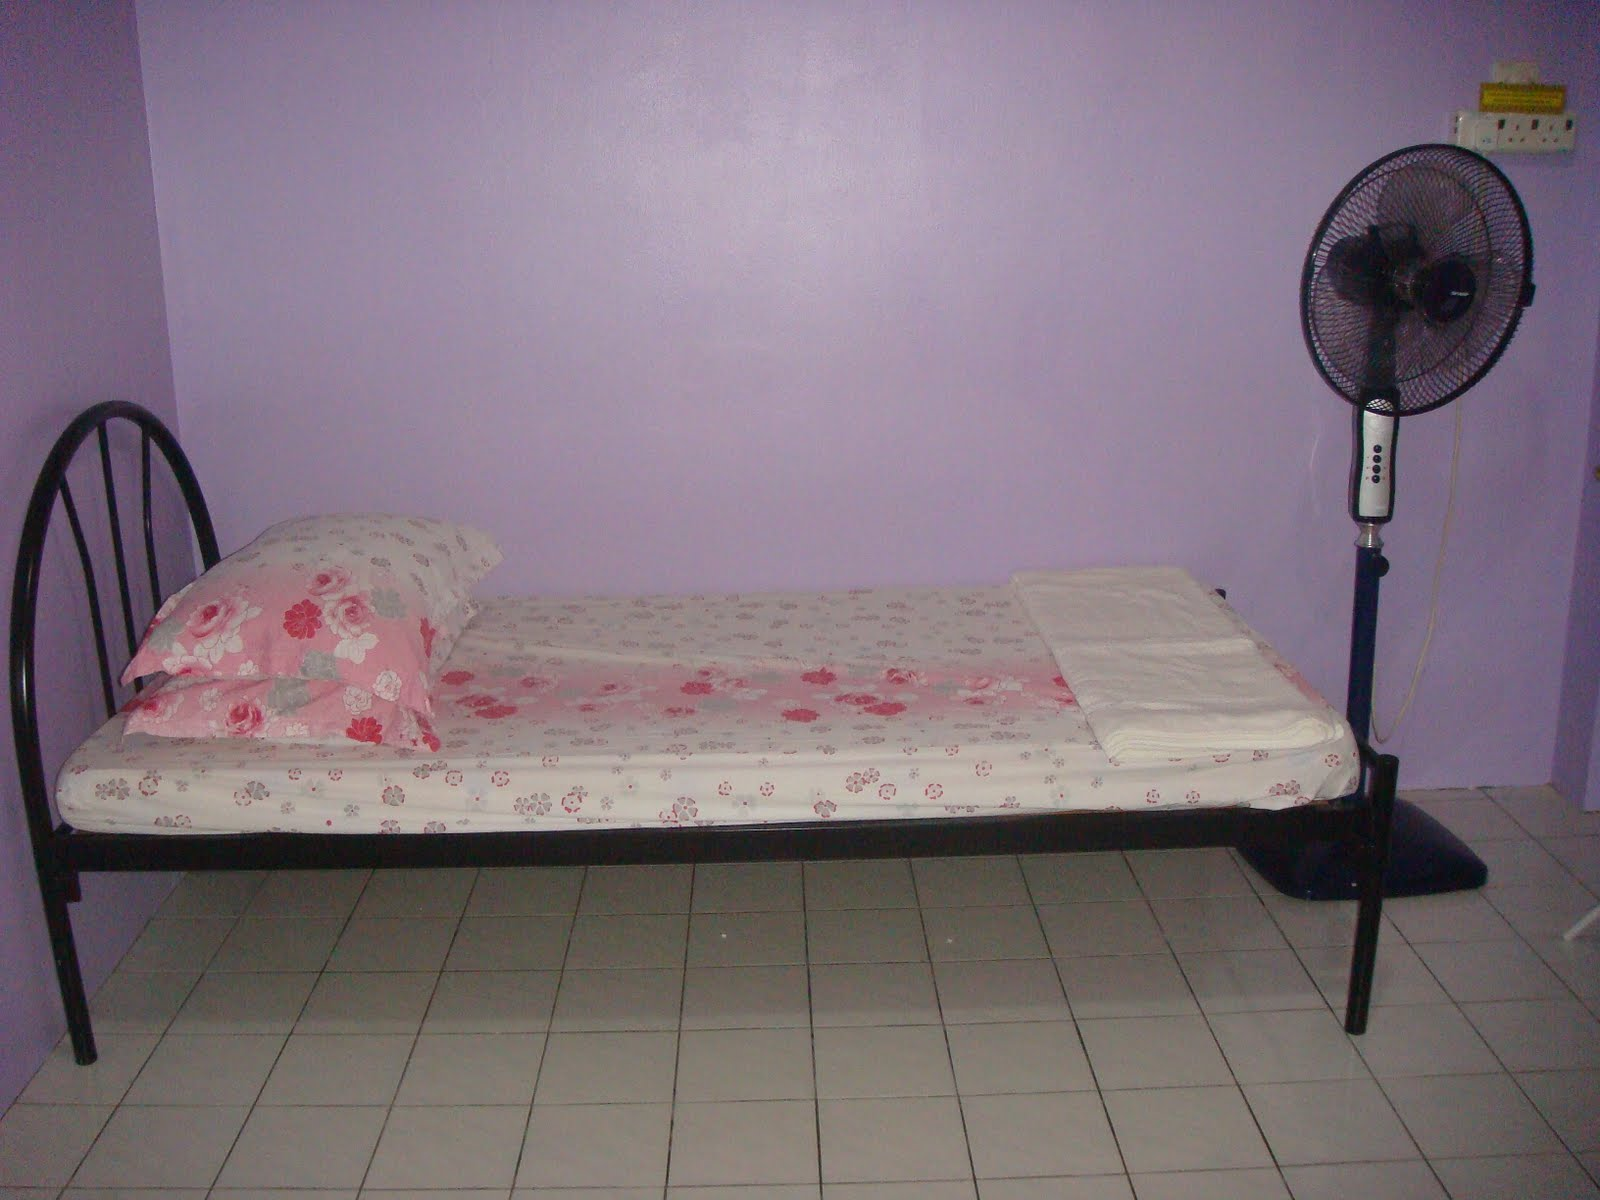 The bedroom kuching bedroom furniture high resolution for Home wallpaper kuching